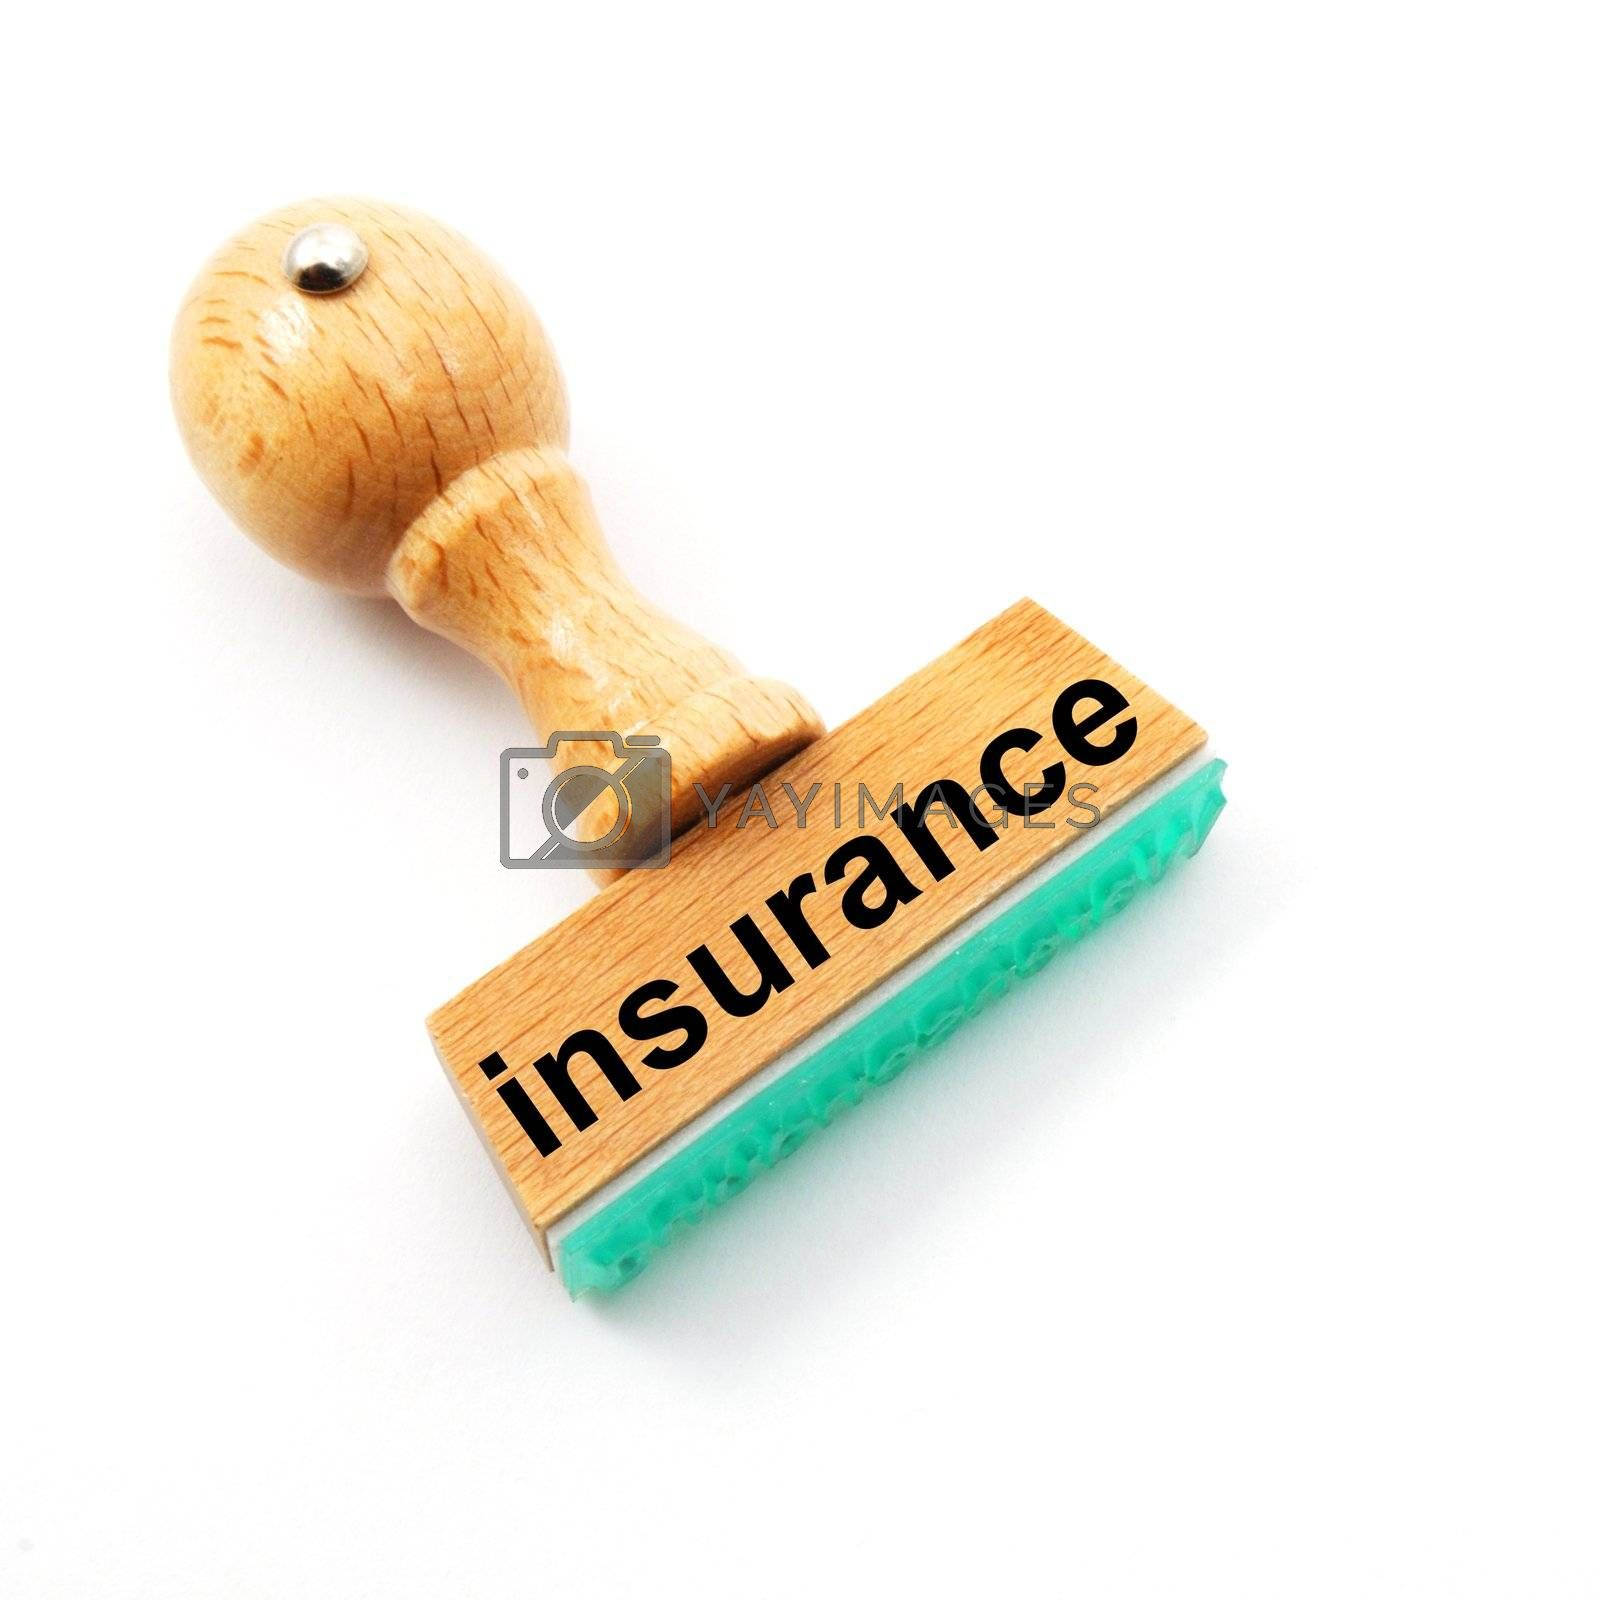 Royalty free image of insurance by gunnar3000